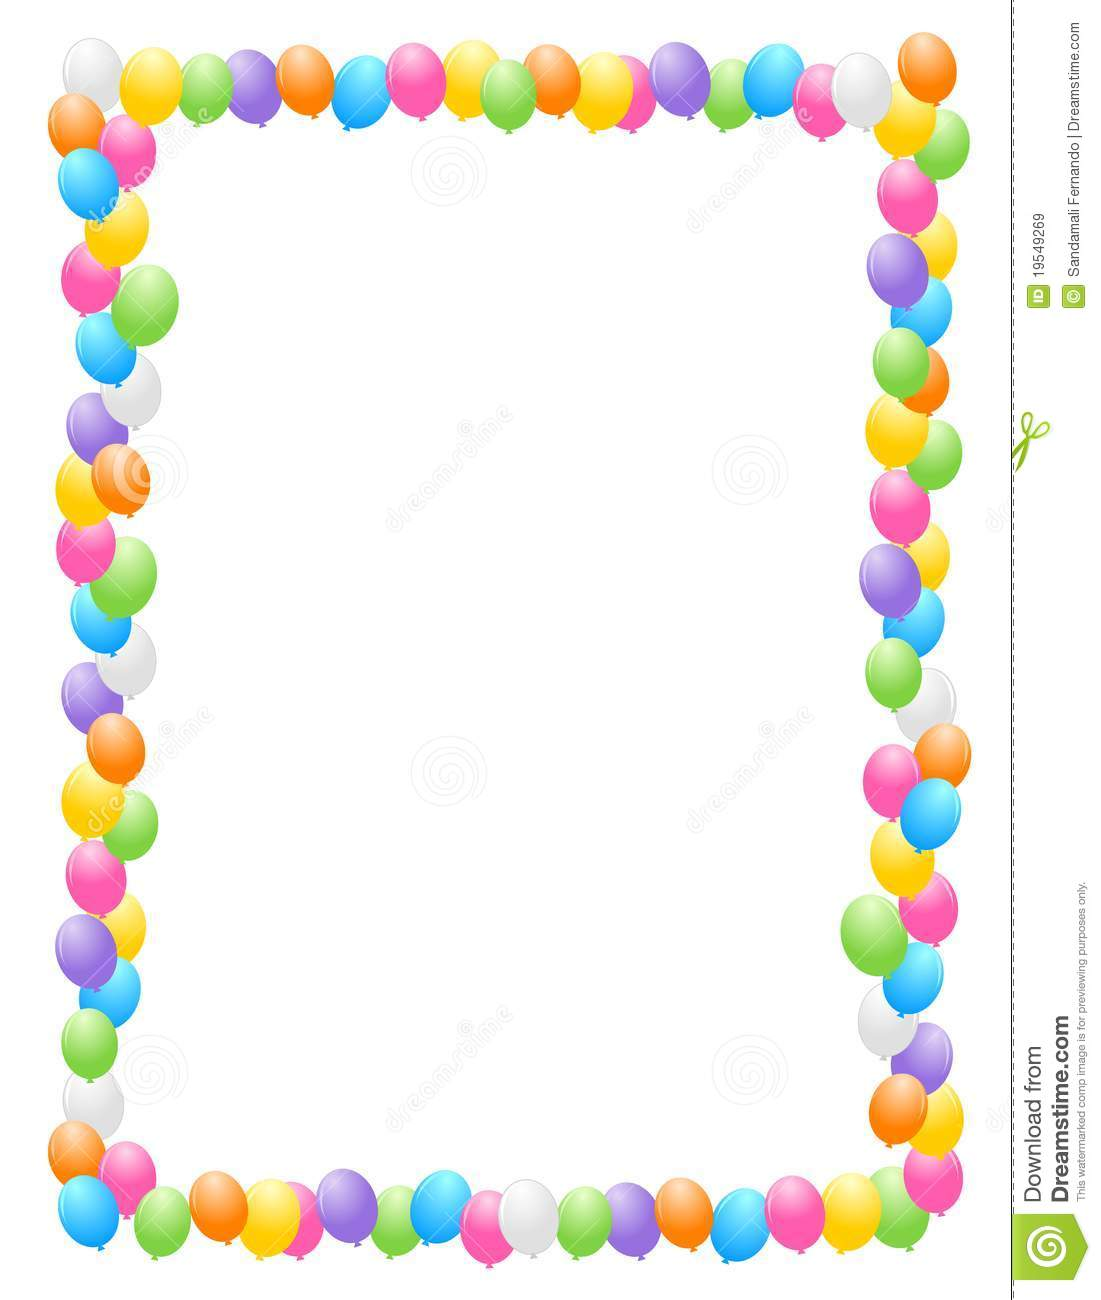 Border   Frame Illustration For Birthday Cards And Party Backgrounds